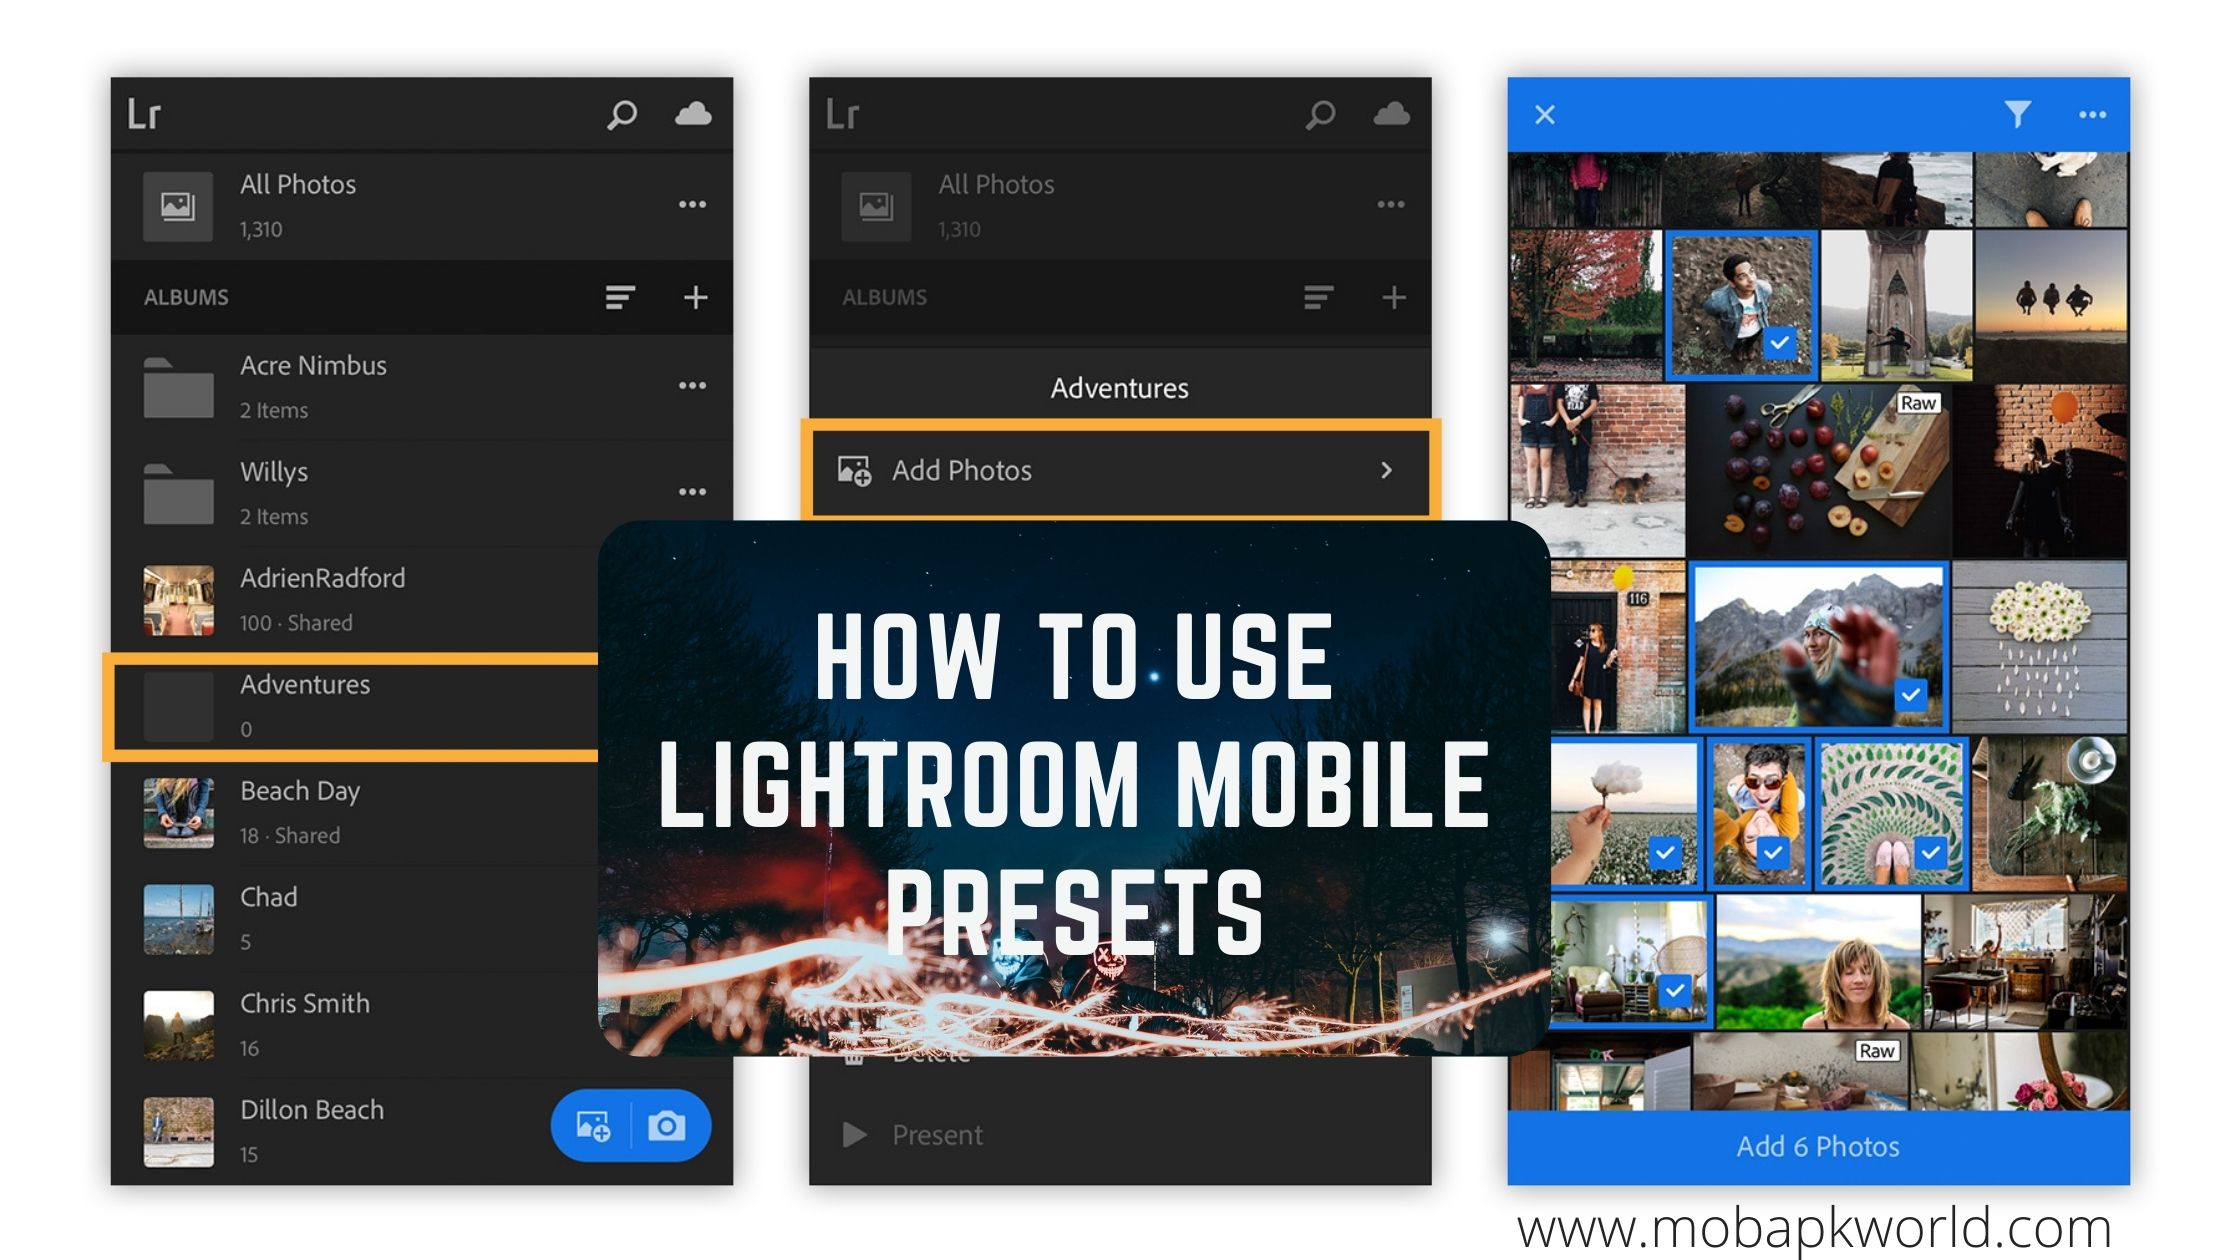 How to Use Lightroom Mobile Presets